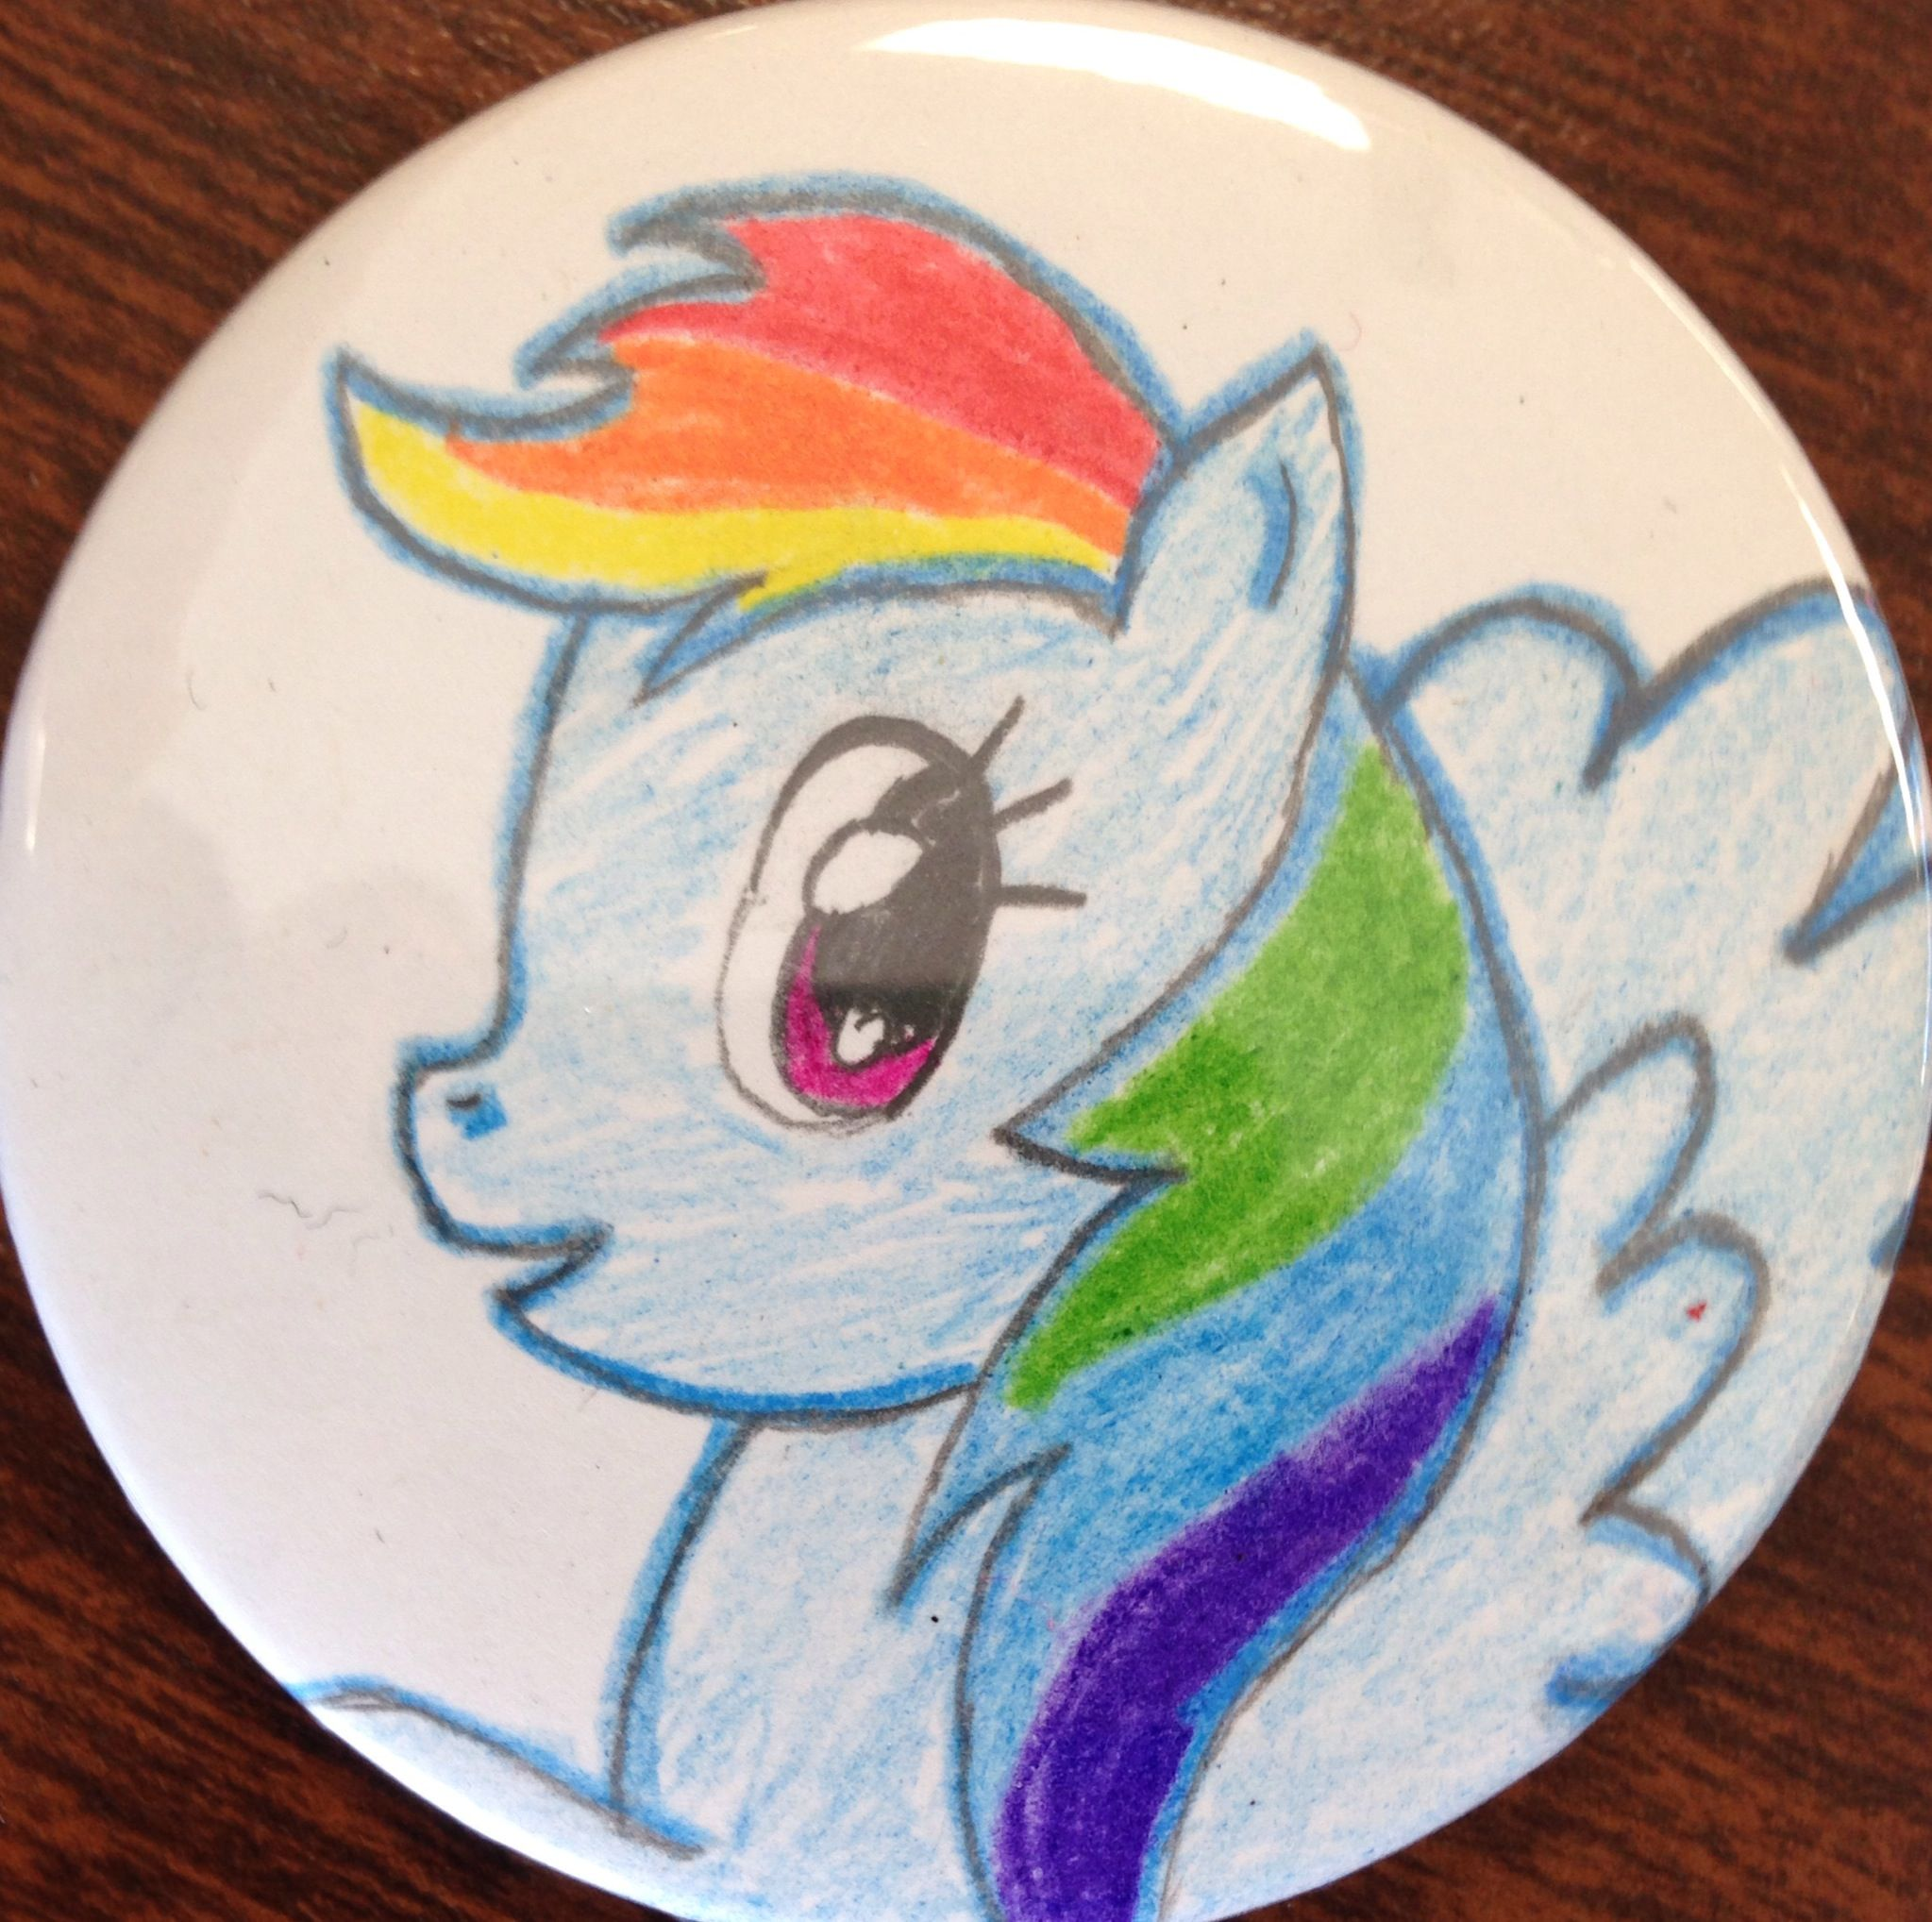 I was manning a button booth and a chick wanted me to draw a Rainbow Dash pin, so I did. But I thought I did such a nice job I wanted to keep it for myself.